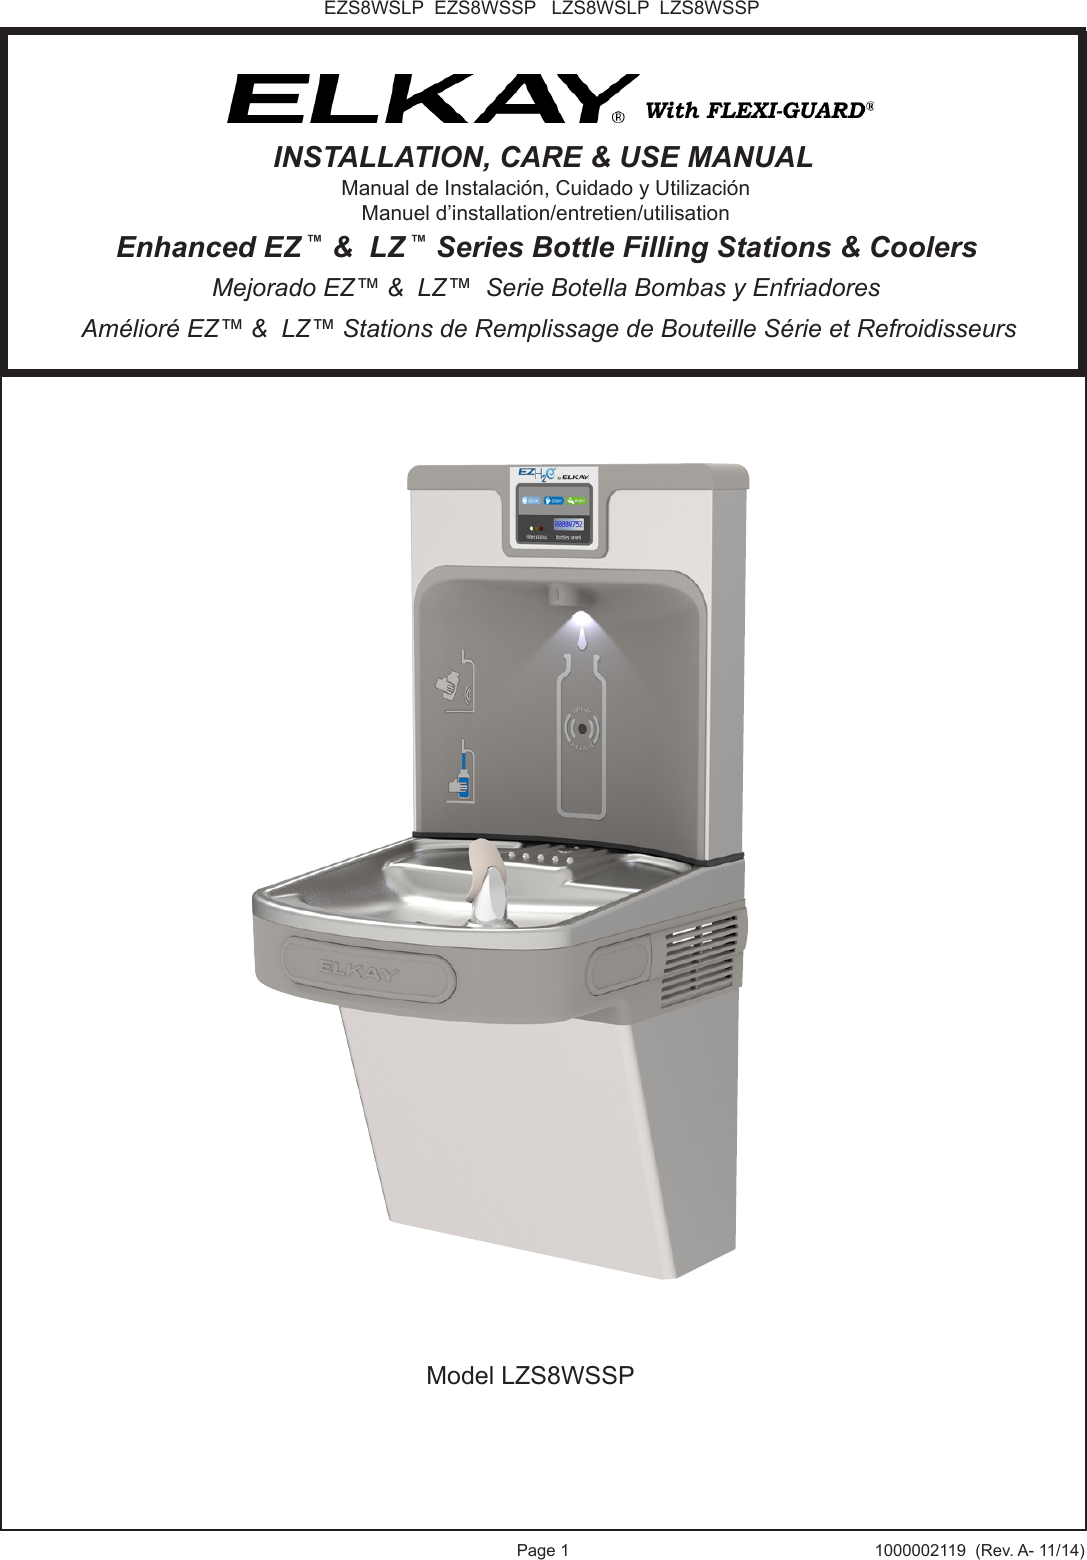 Elkay LZWSNA Drinking Fountain and/or Bottle Filling Station